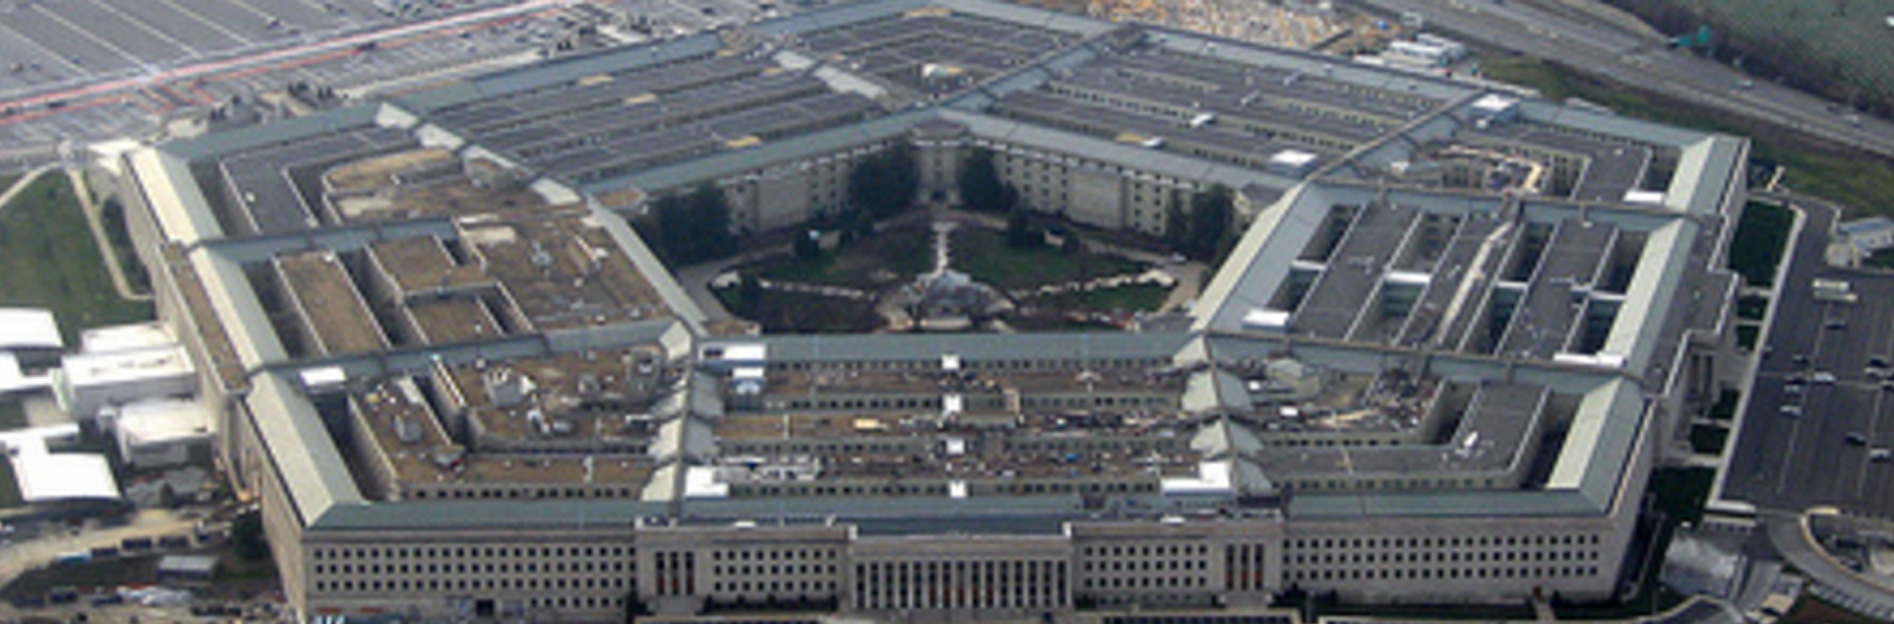 Aerial Image of The Pentagon